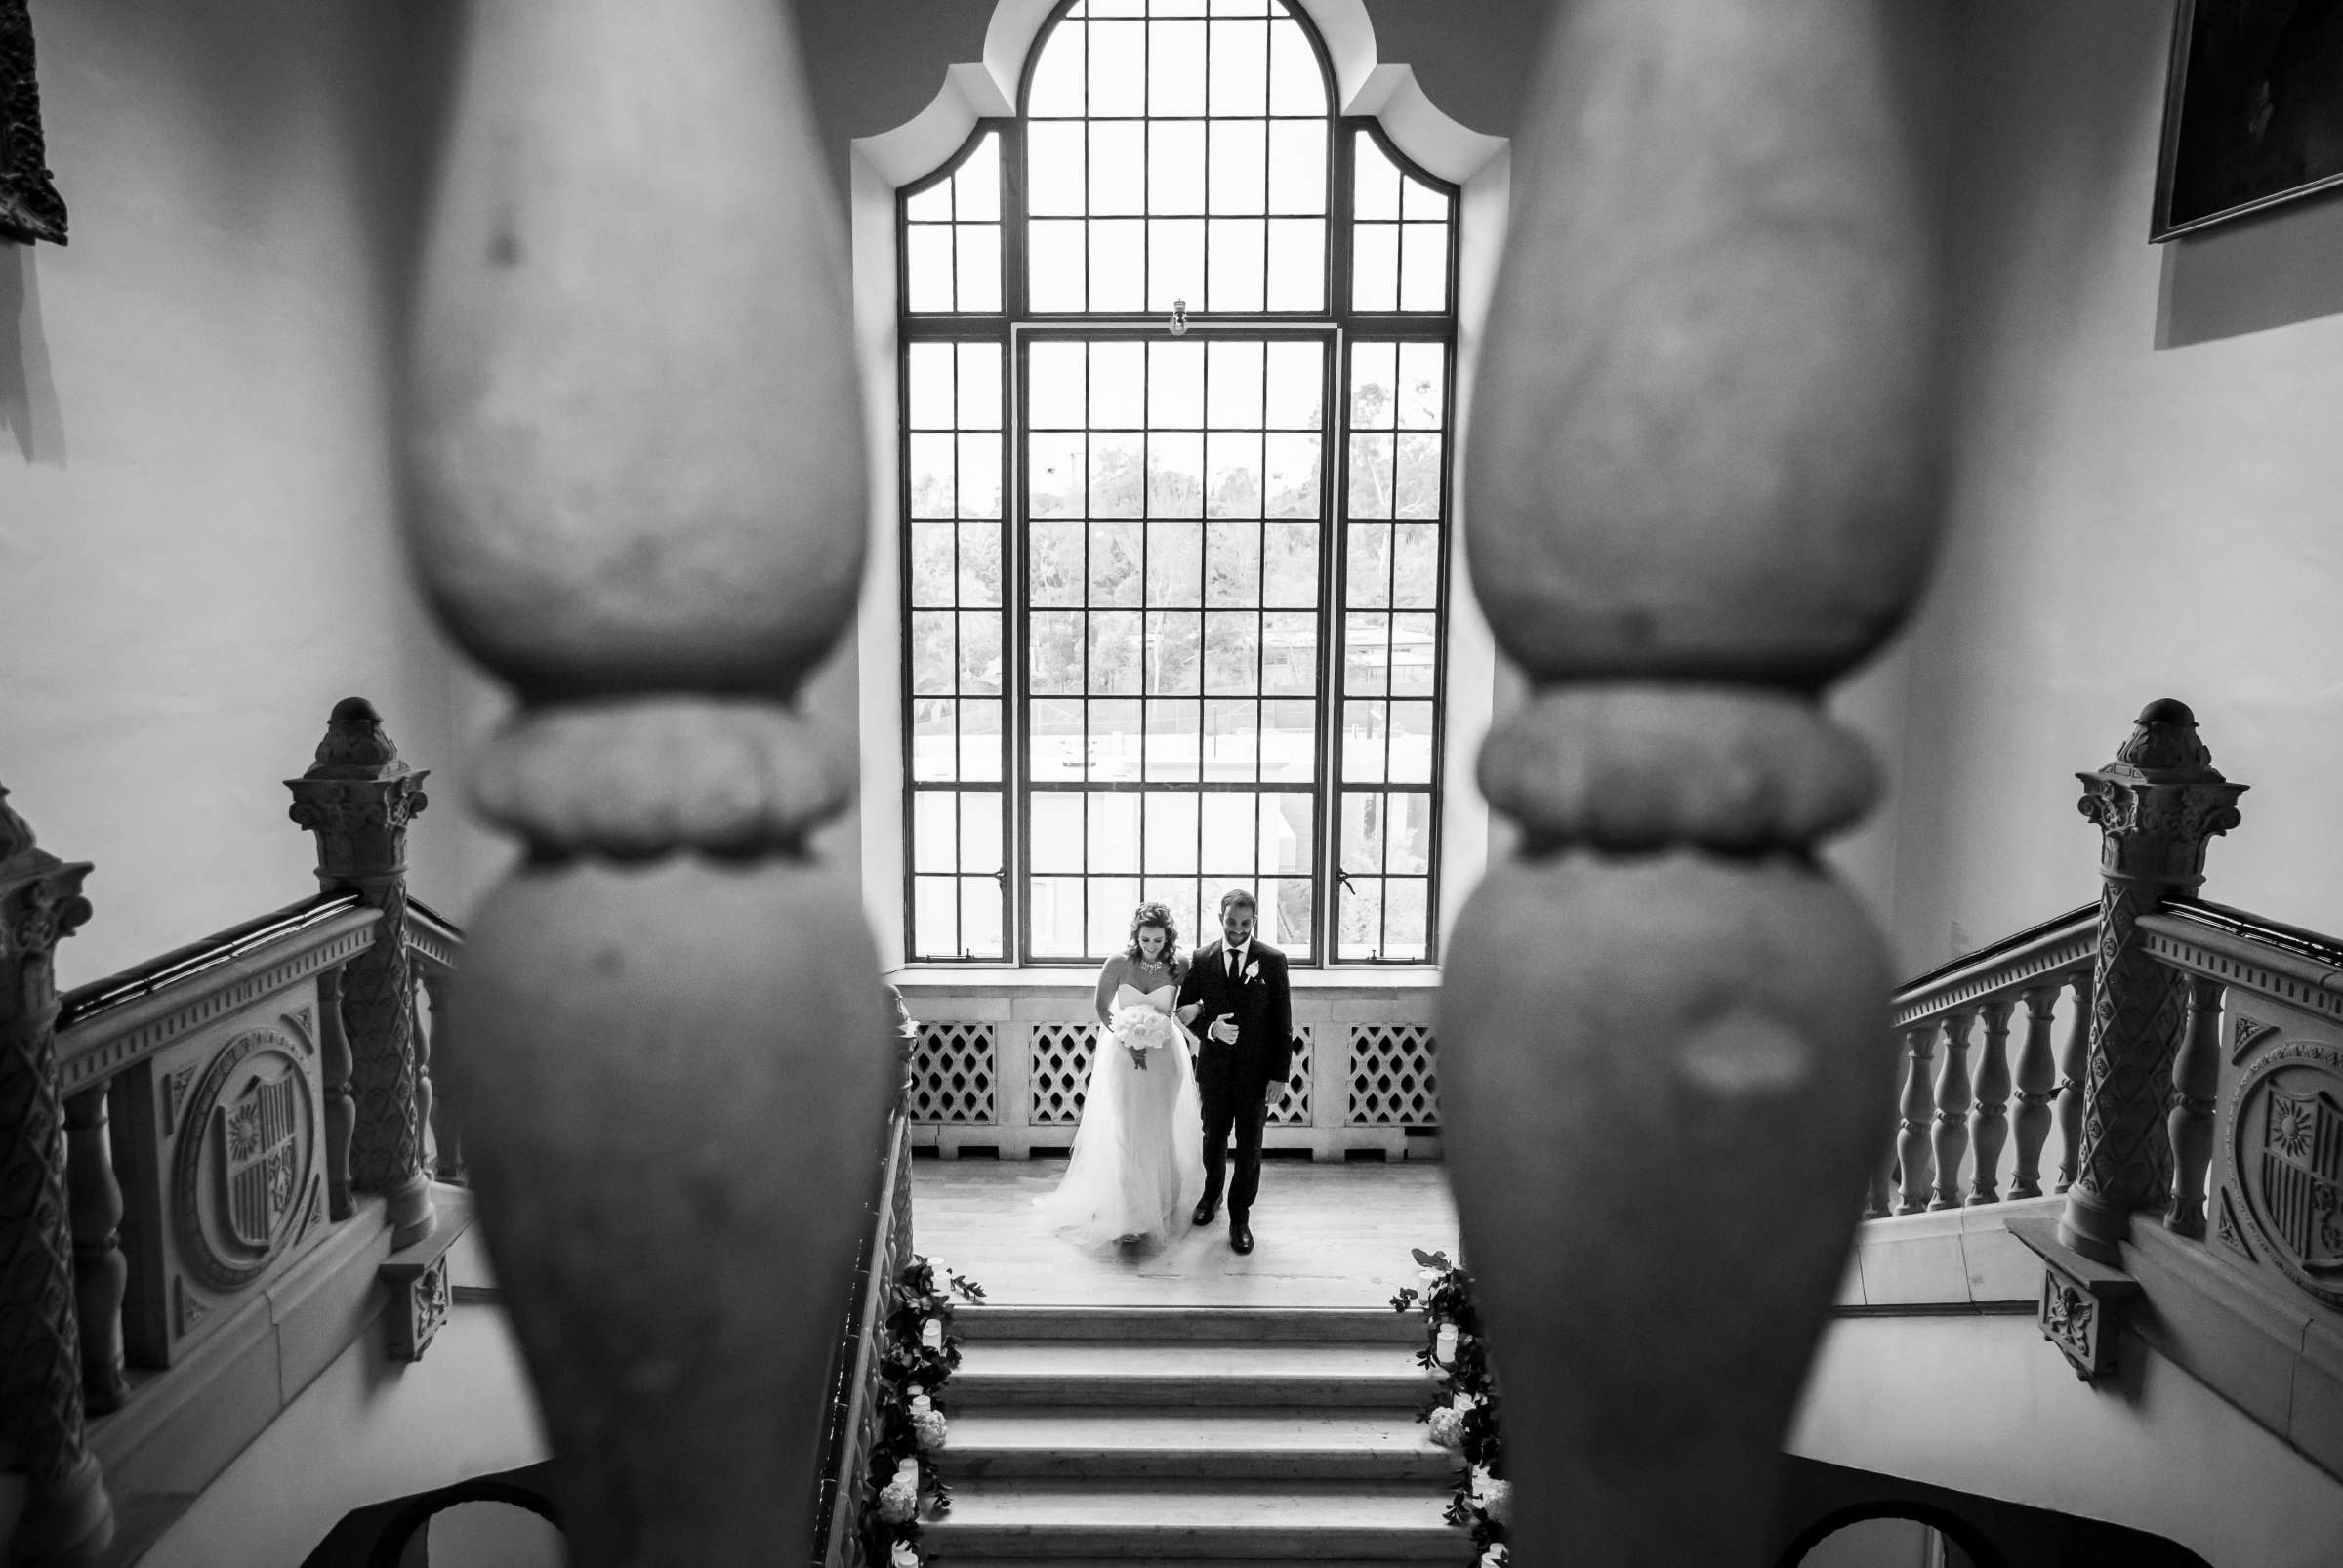 San Diego Museum of Art Wedding coordinated by First Comes Love Weddings & Events, Ruthie and Larry Wedding Photo #236795 by True Photography